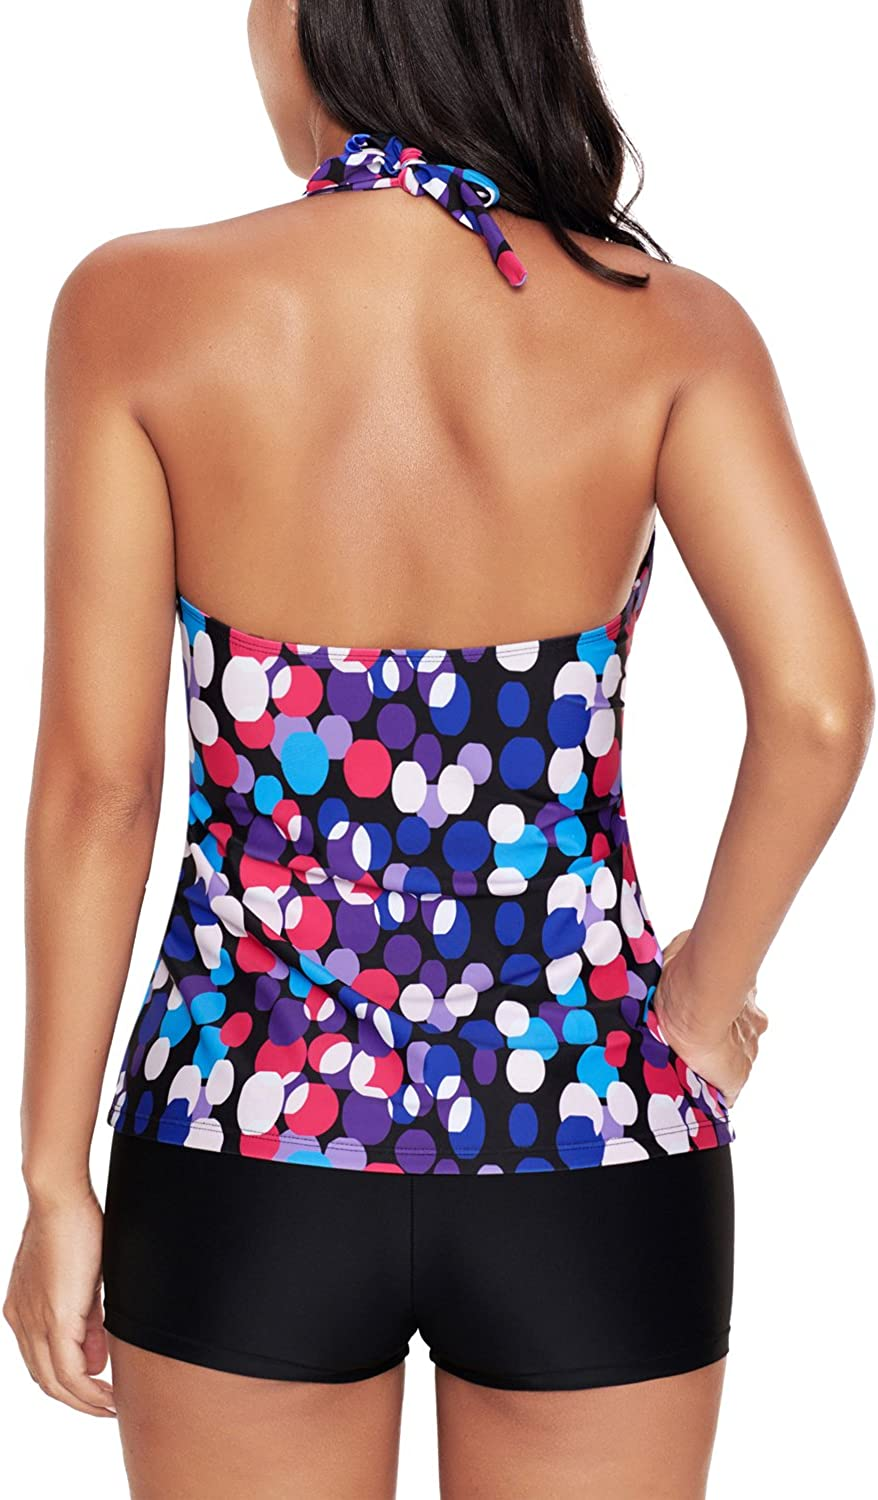 Uniarmoire Womens Halter Top and Boy Shorts Tankini Suit Plus Size Dot 5XL